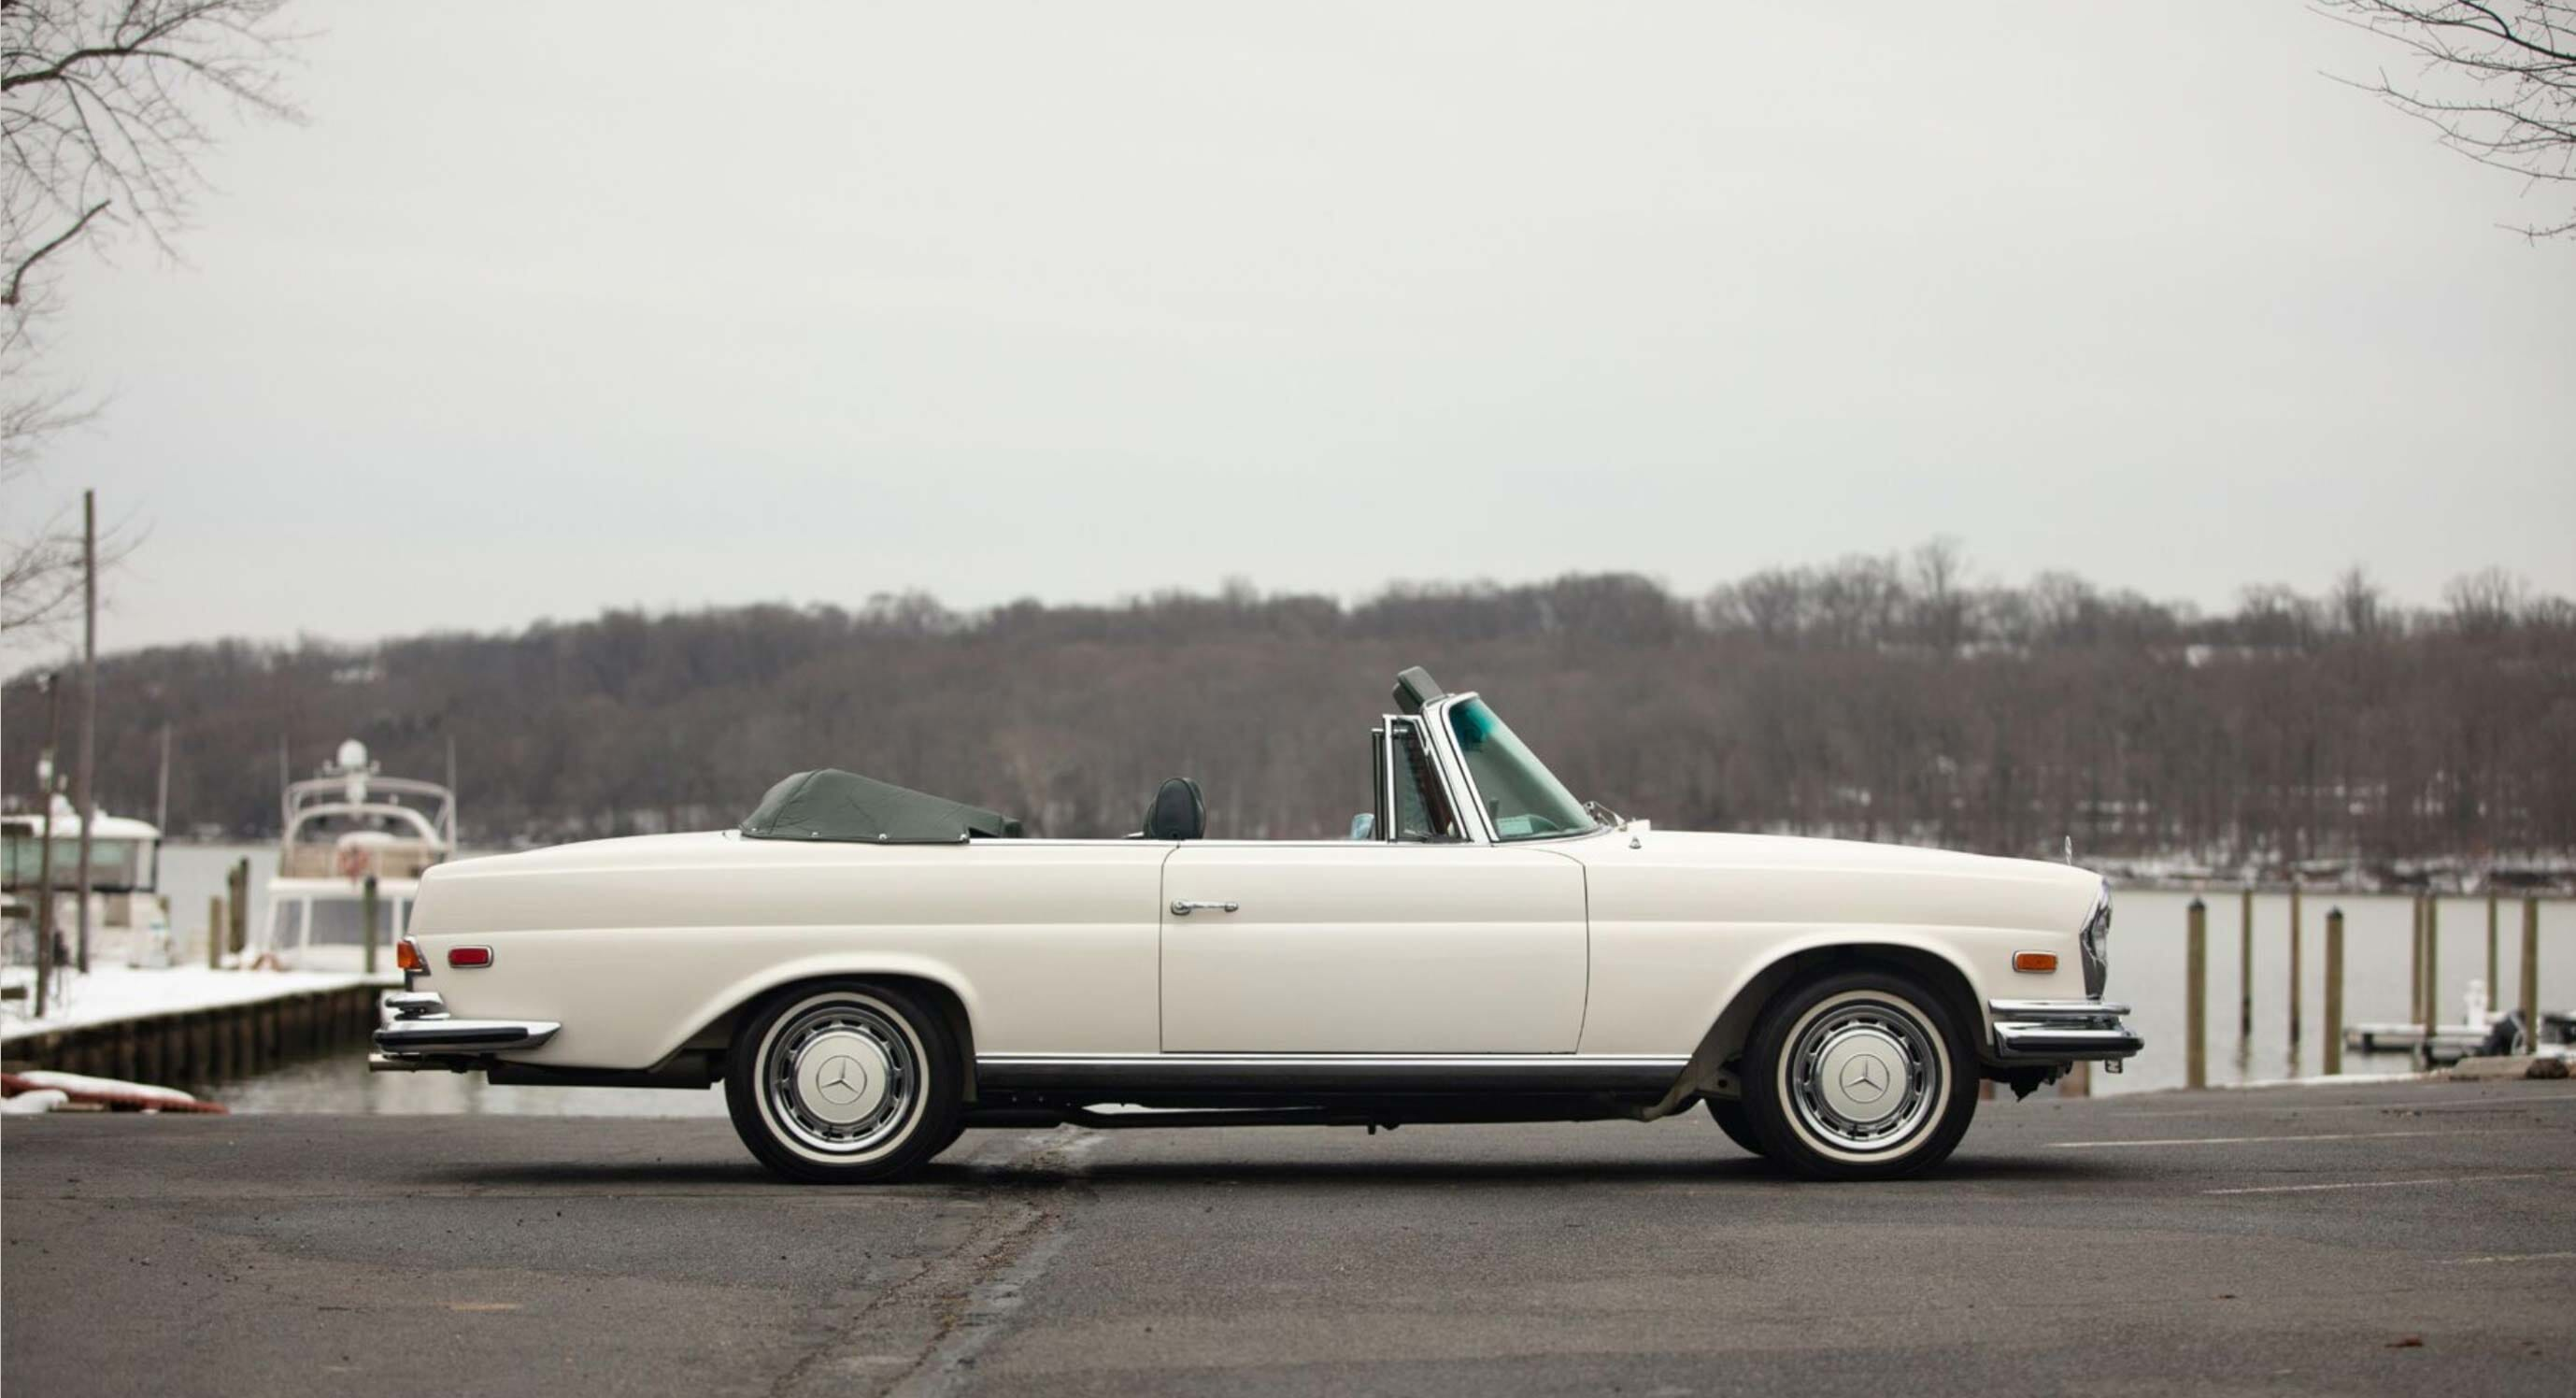 Classic Car Find of the Week: 1971 Mercedes-Benz 280 SE 3.5 Cabriolet